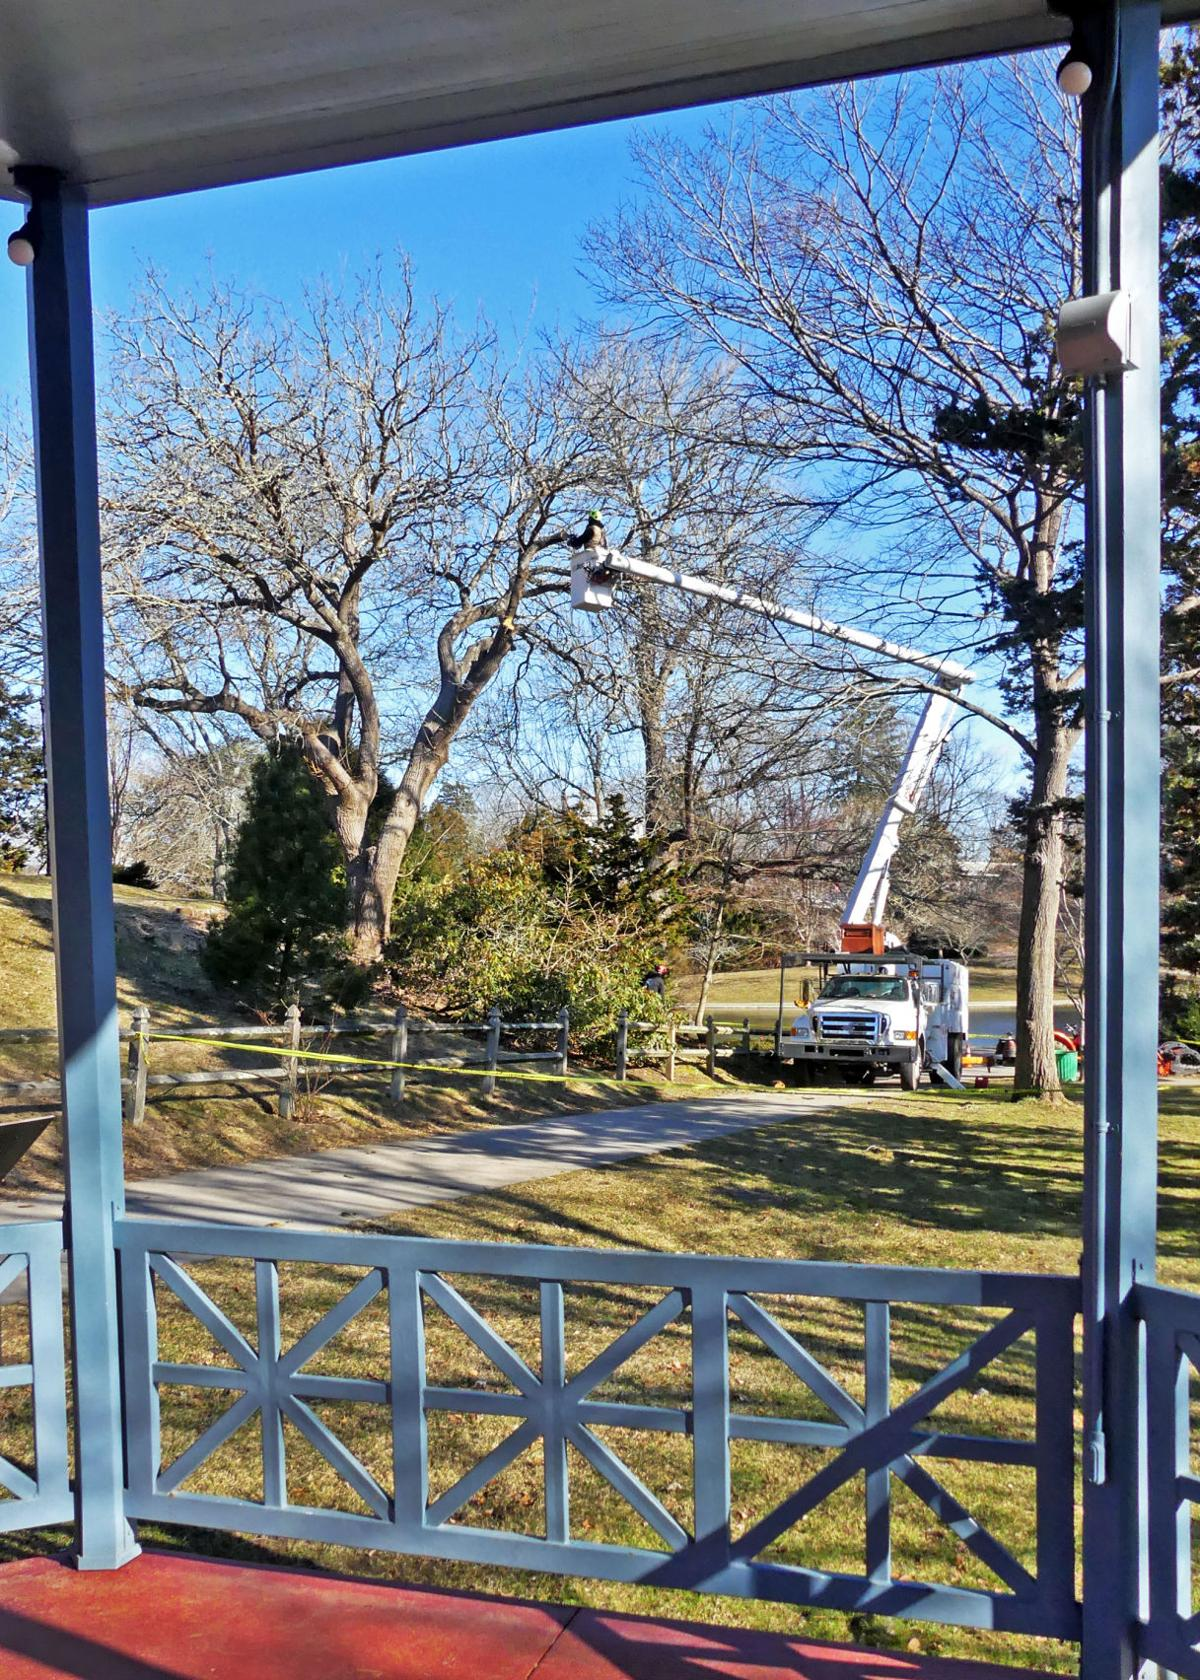 021920 WES Mulberry tree cut down Wilcox Park 547.JPG